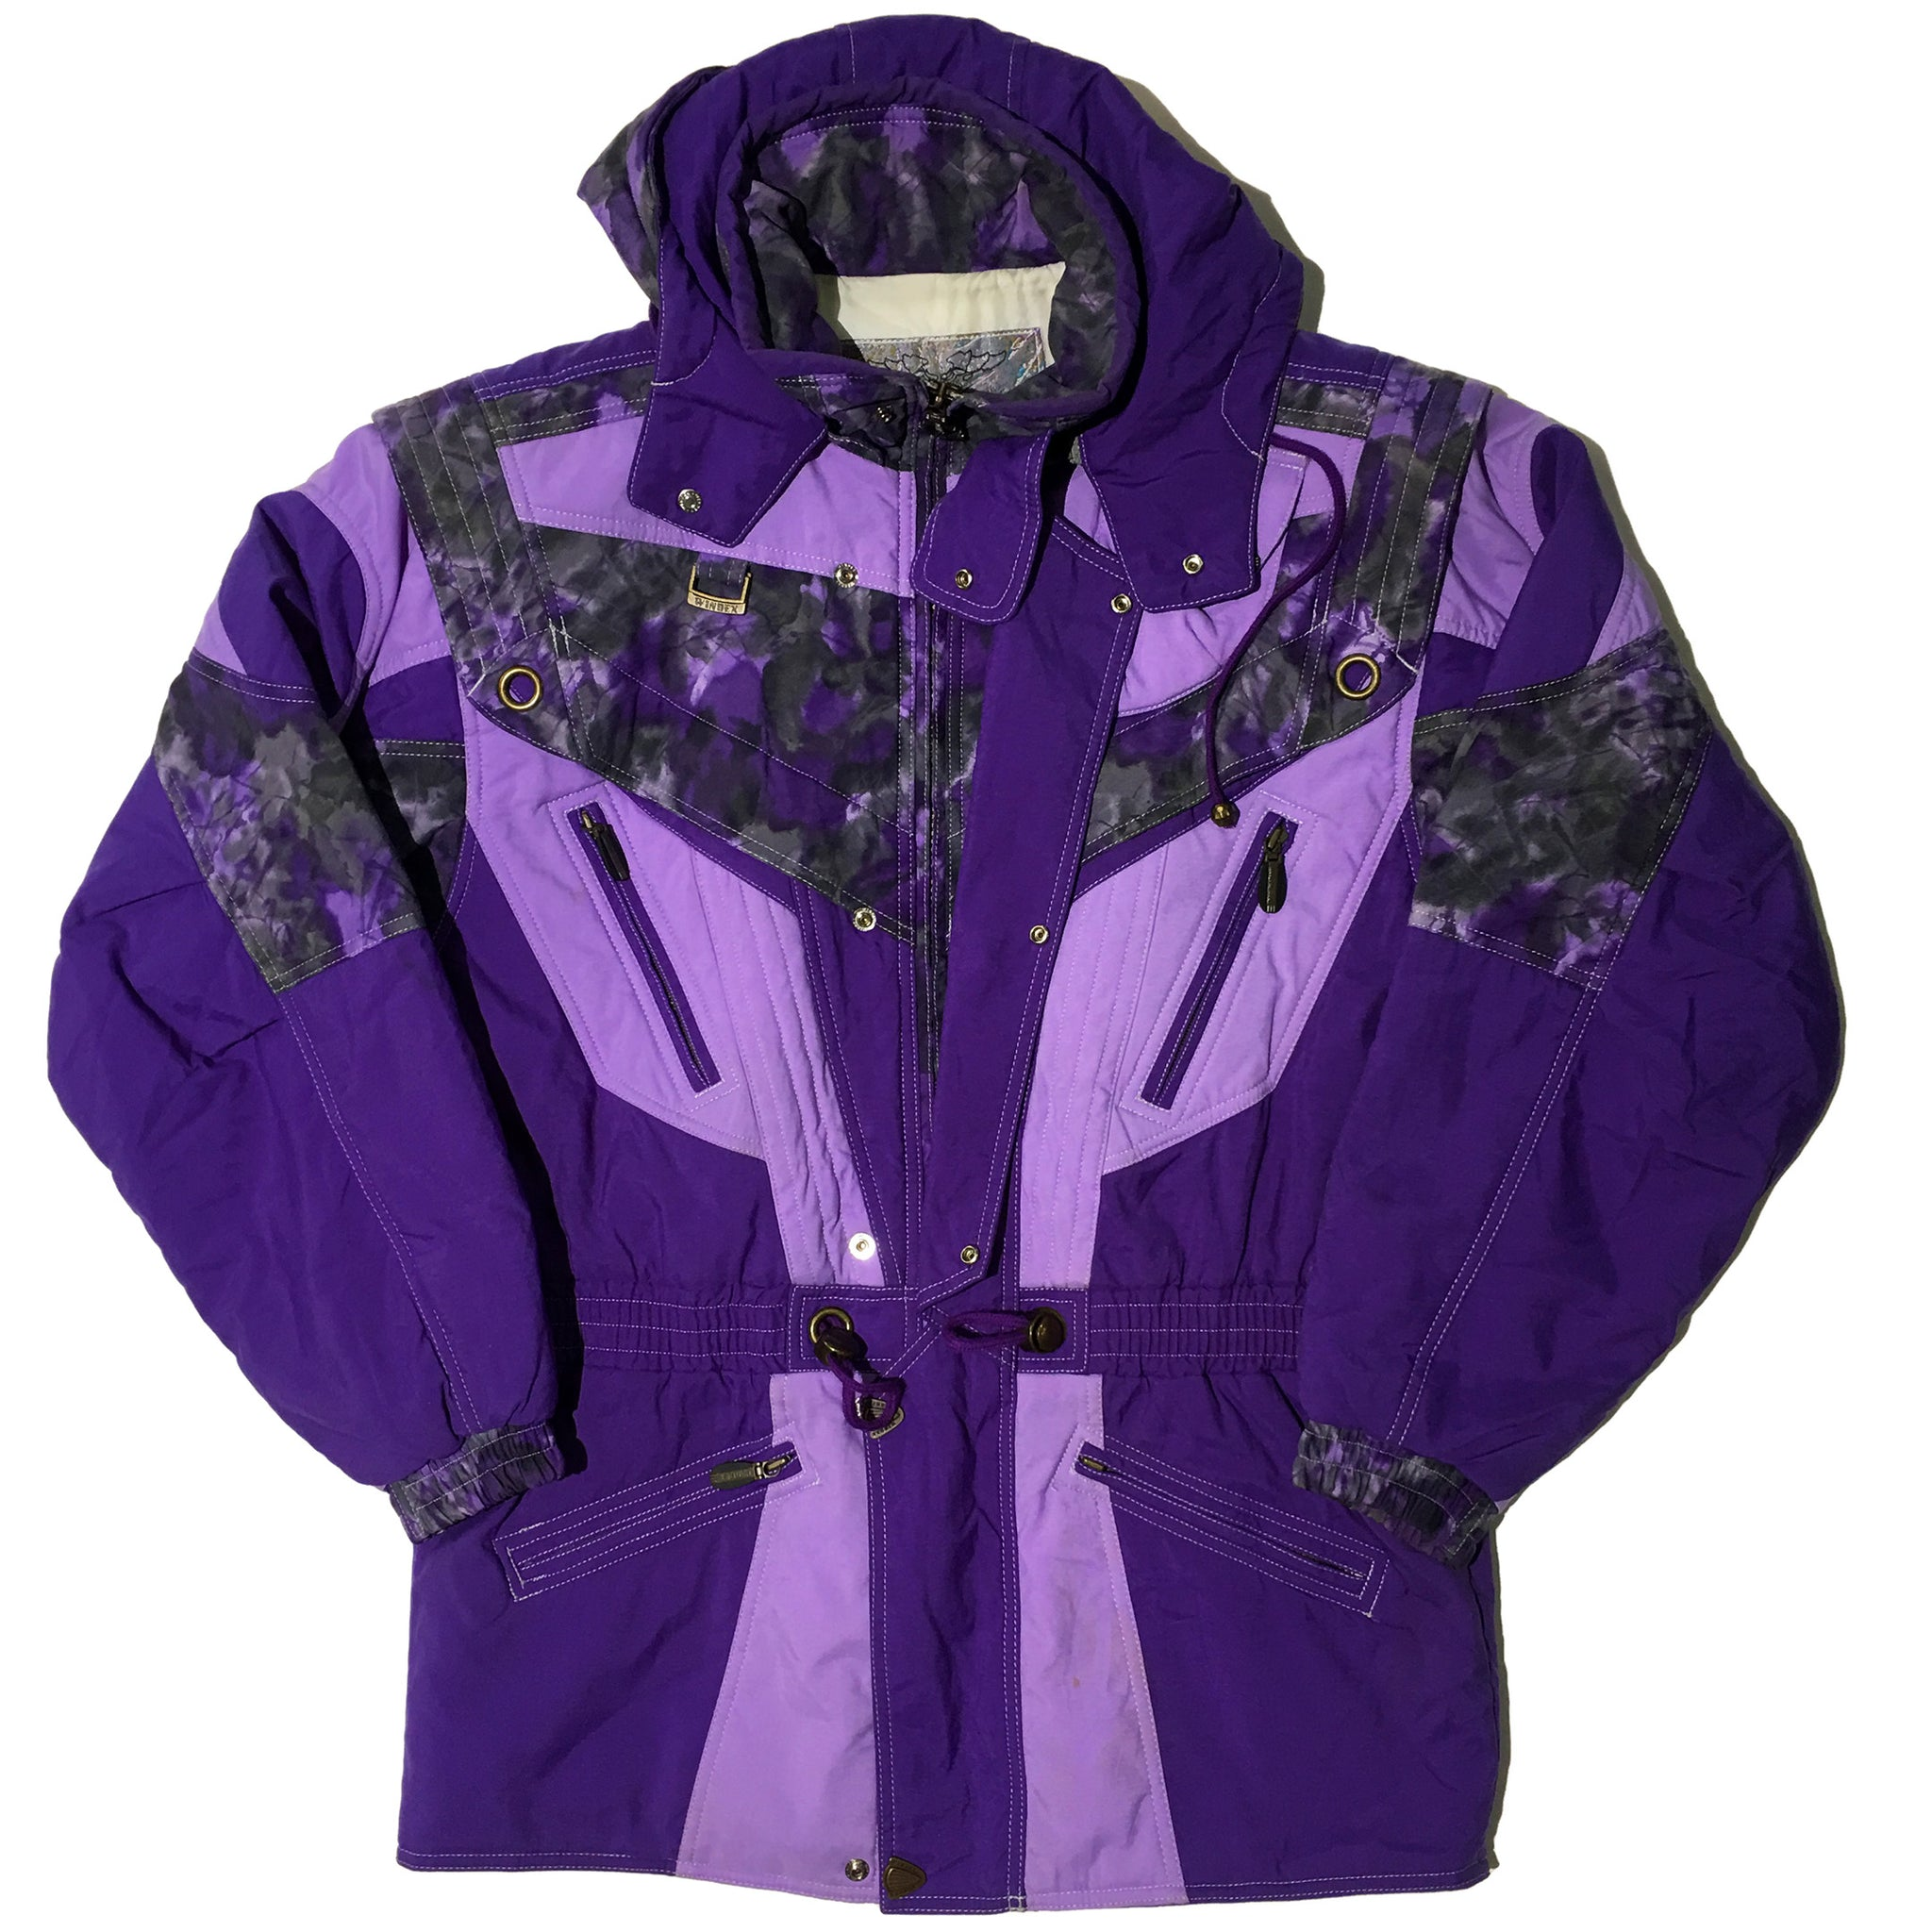 Windex Pro Purple Tone Jacket